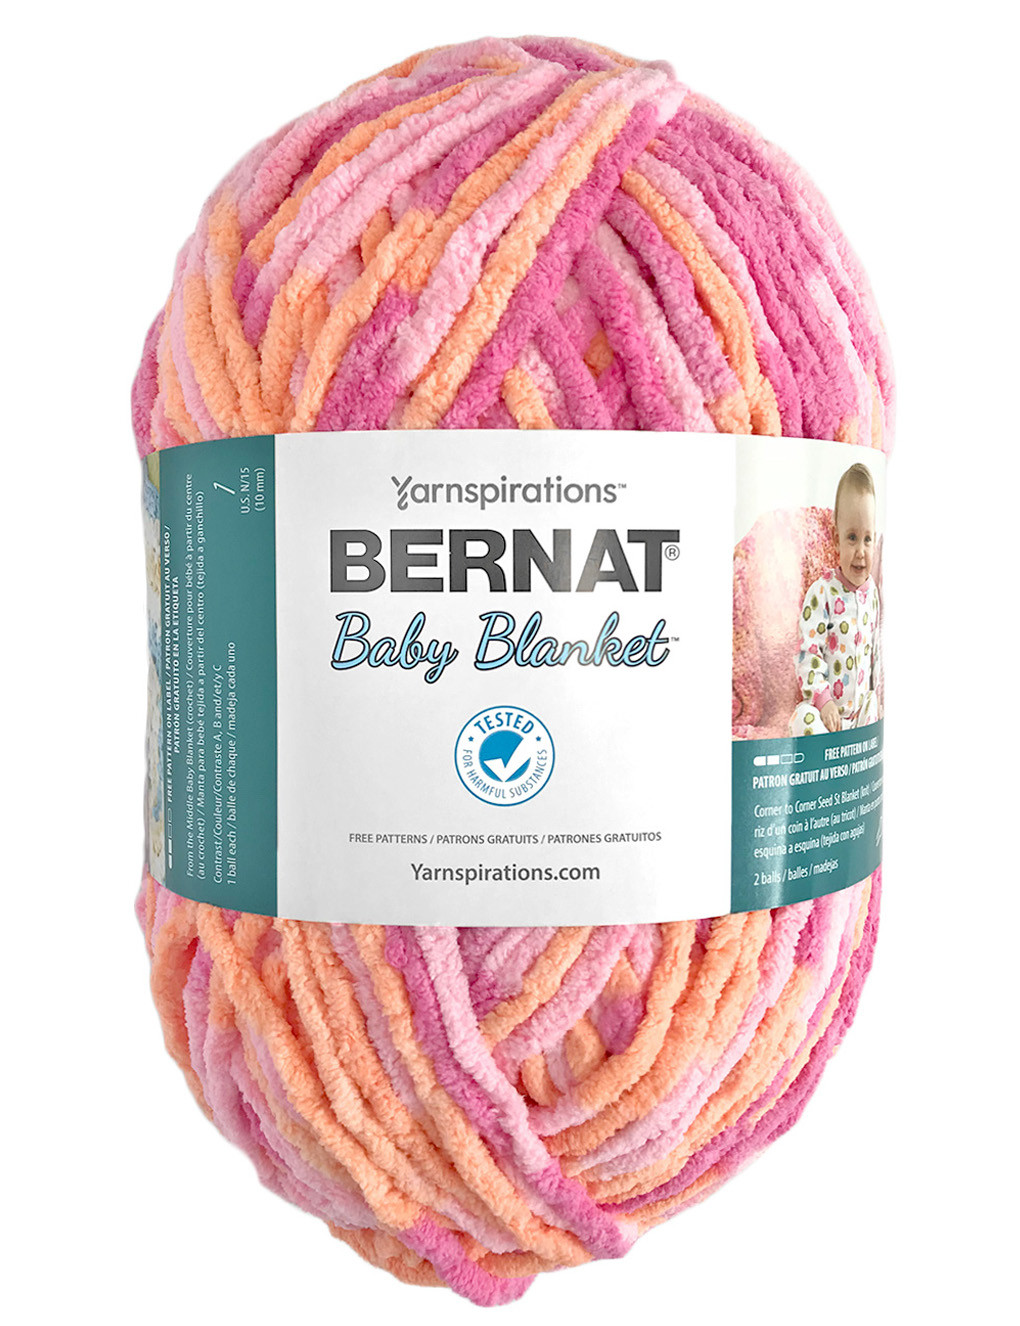 Bernat Baby Blanket Yarn Big Ball Fresh Peachy Bernat Baby Blanket Big Ball Chenille Yarn 300g Of Awesome 48 Pictures Bernat Baby Blanket Yarn Big Ball